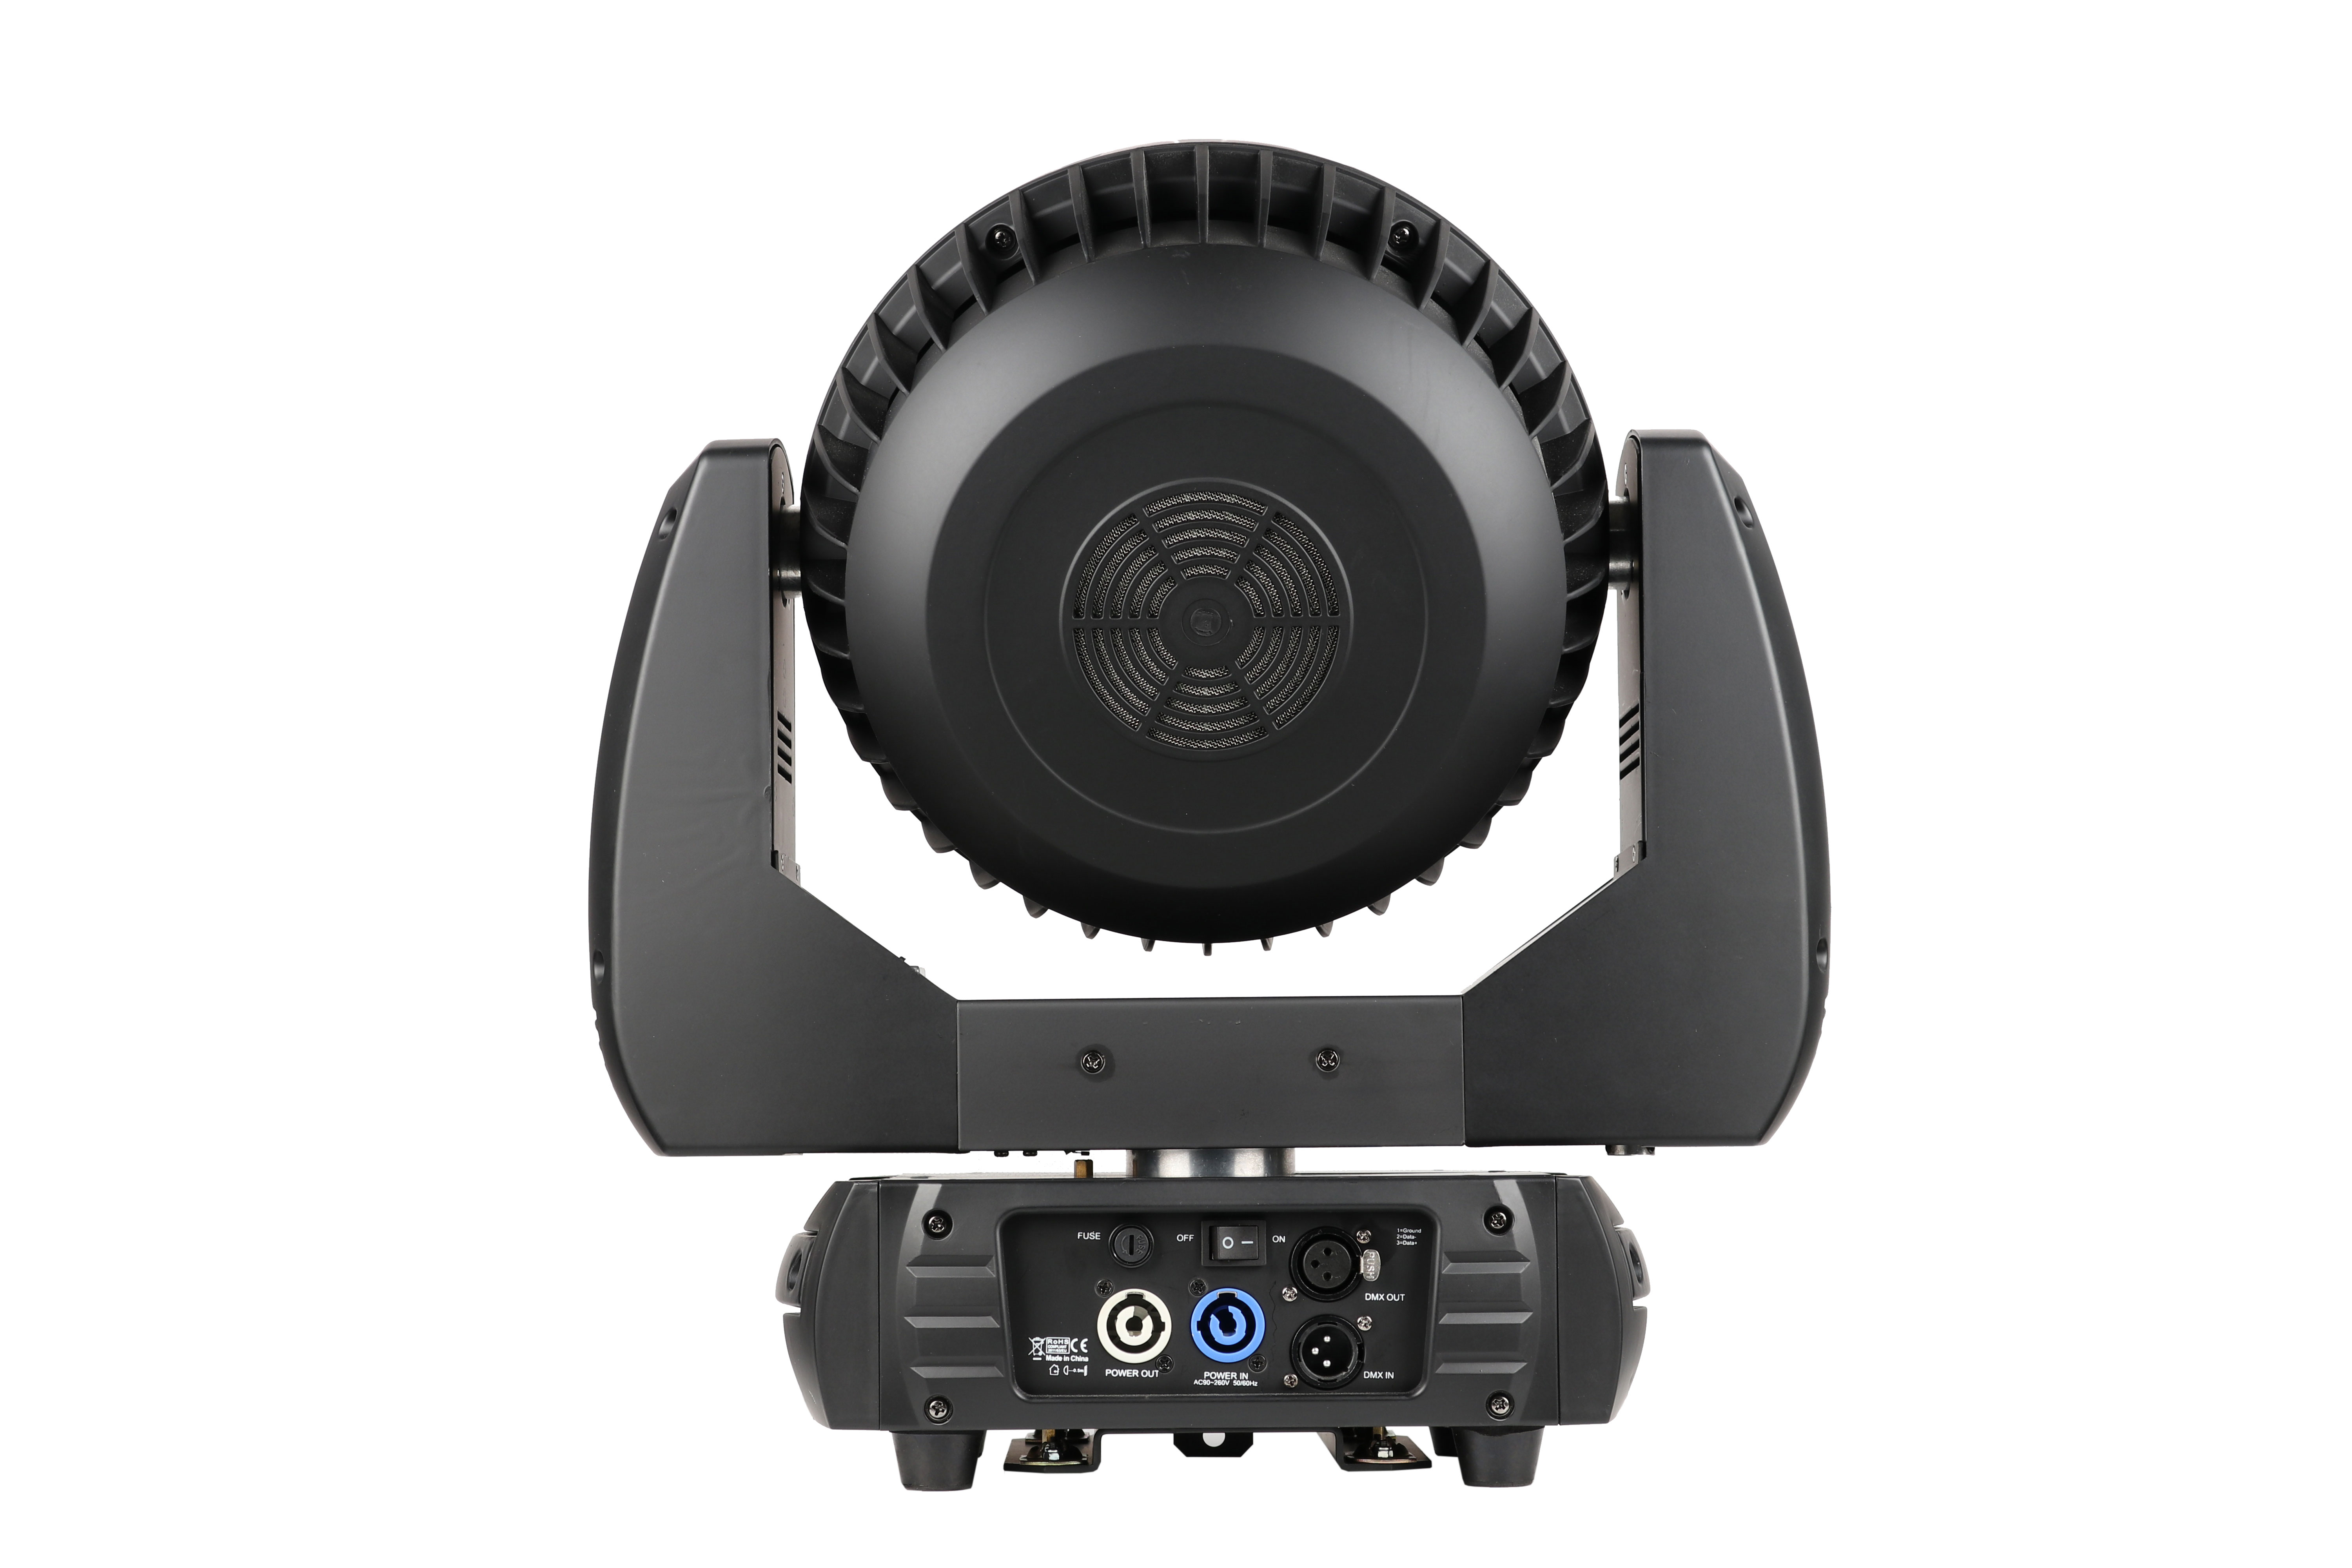 19x40W 4 in 1 LED Moving Head Zoom